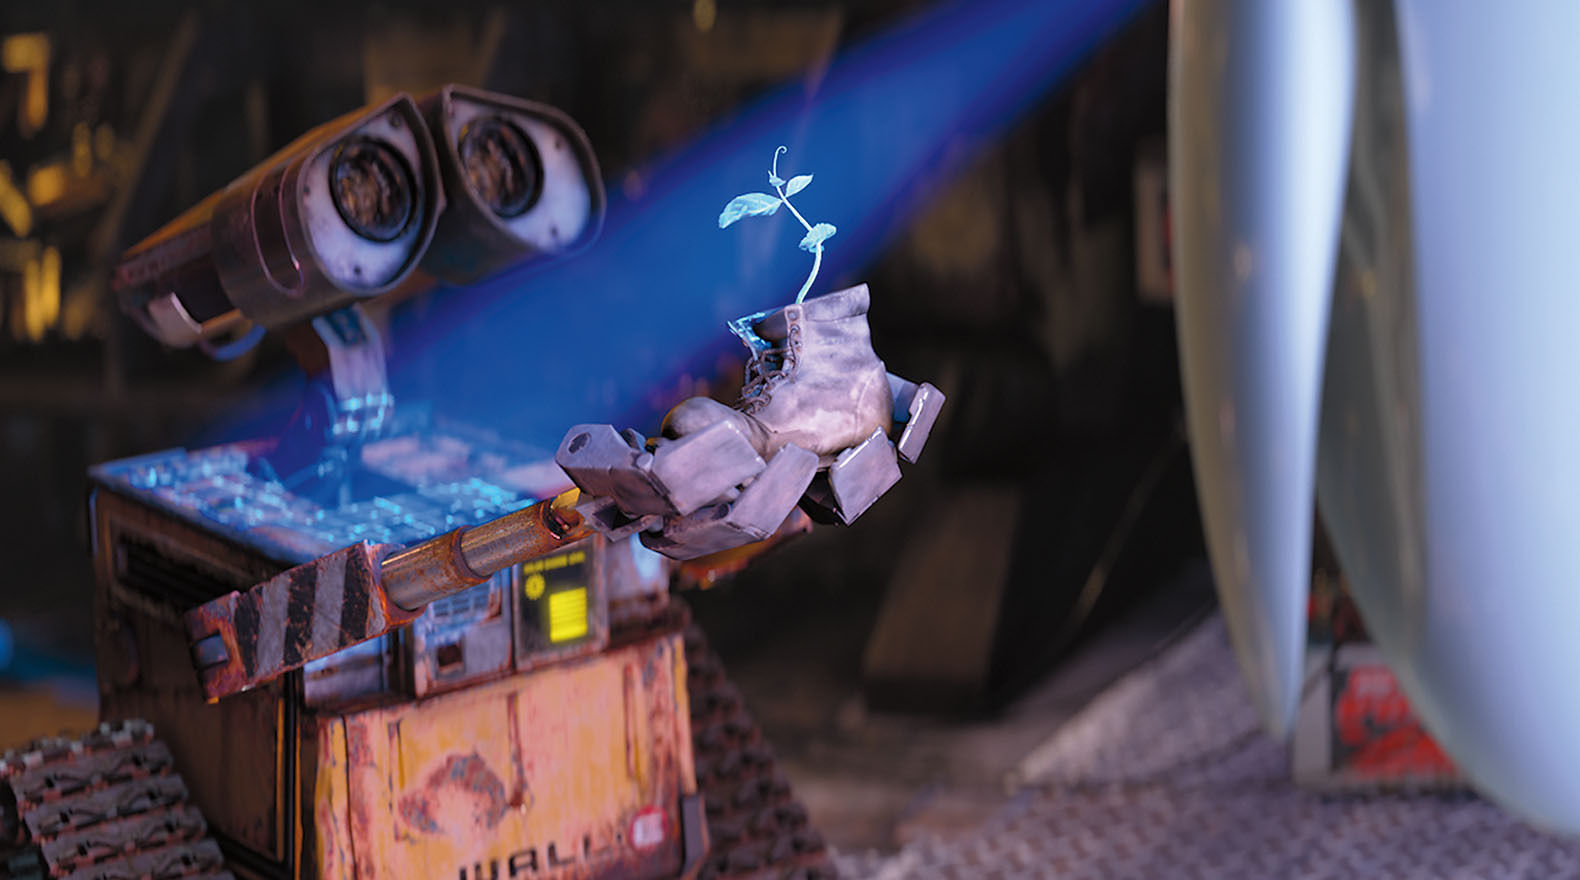 walle-disney.jpeg